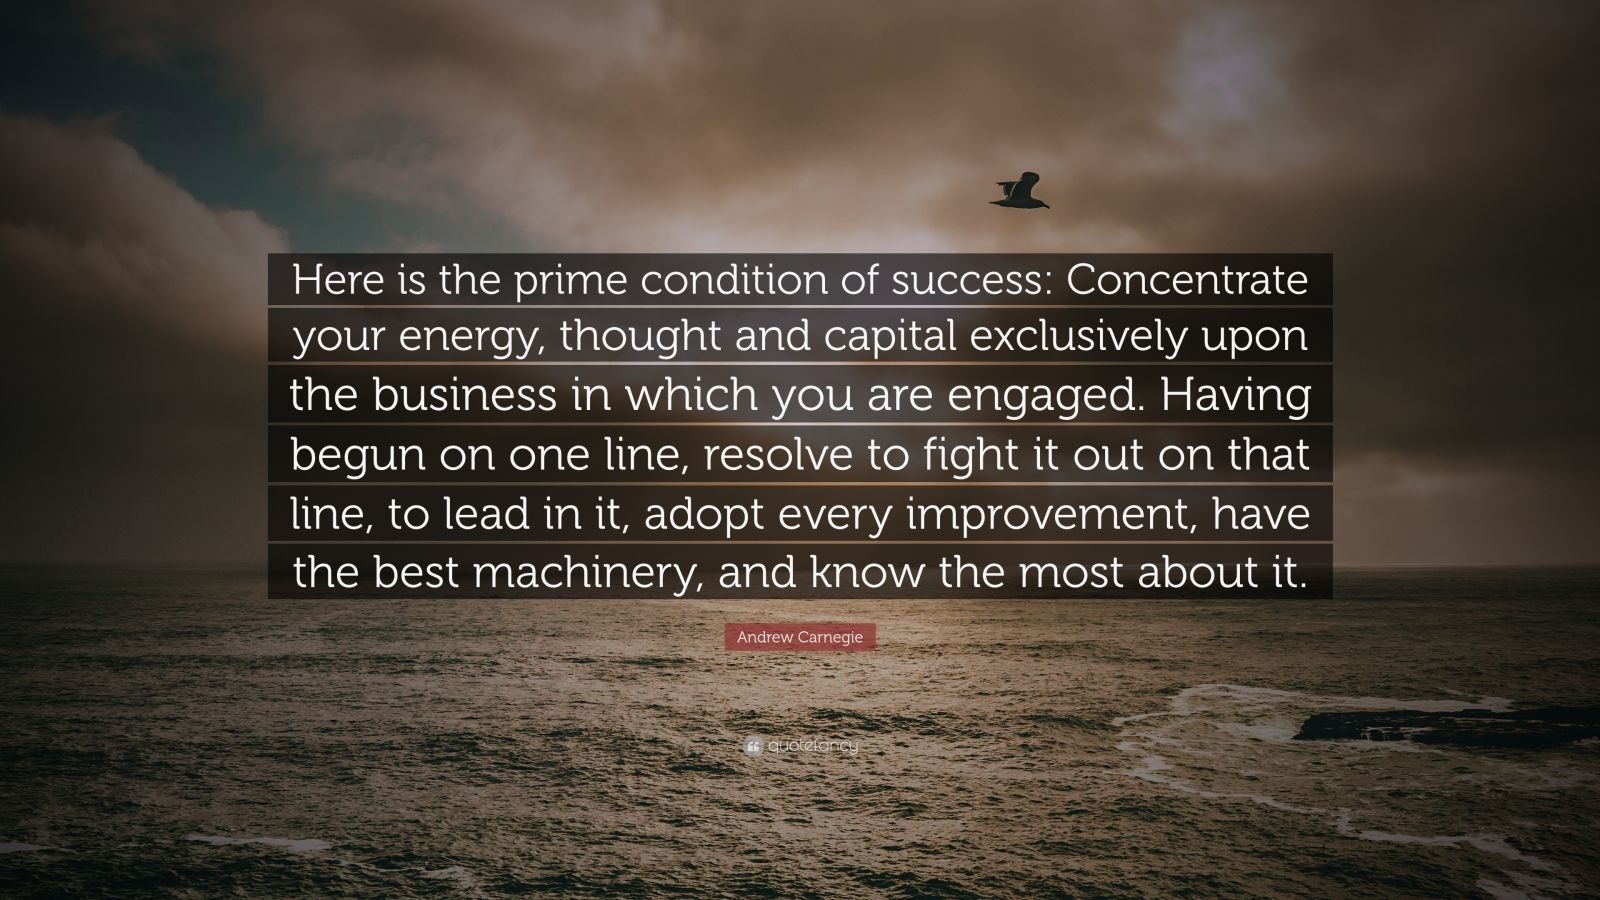 """Andrew Carnegie Quote: """"Here is the prime condition of success: Concentrate your energy, thought and capital exclusively upon the business in which you are engaged. Having begun on one line, resolve to fight it out on that line, to lead in it, adopt every improvement, have the best machinery, and know the most about it."""""""